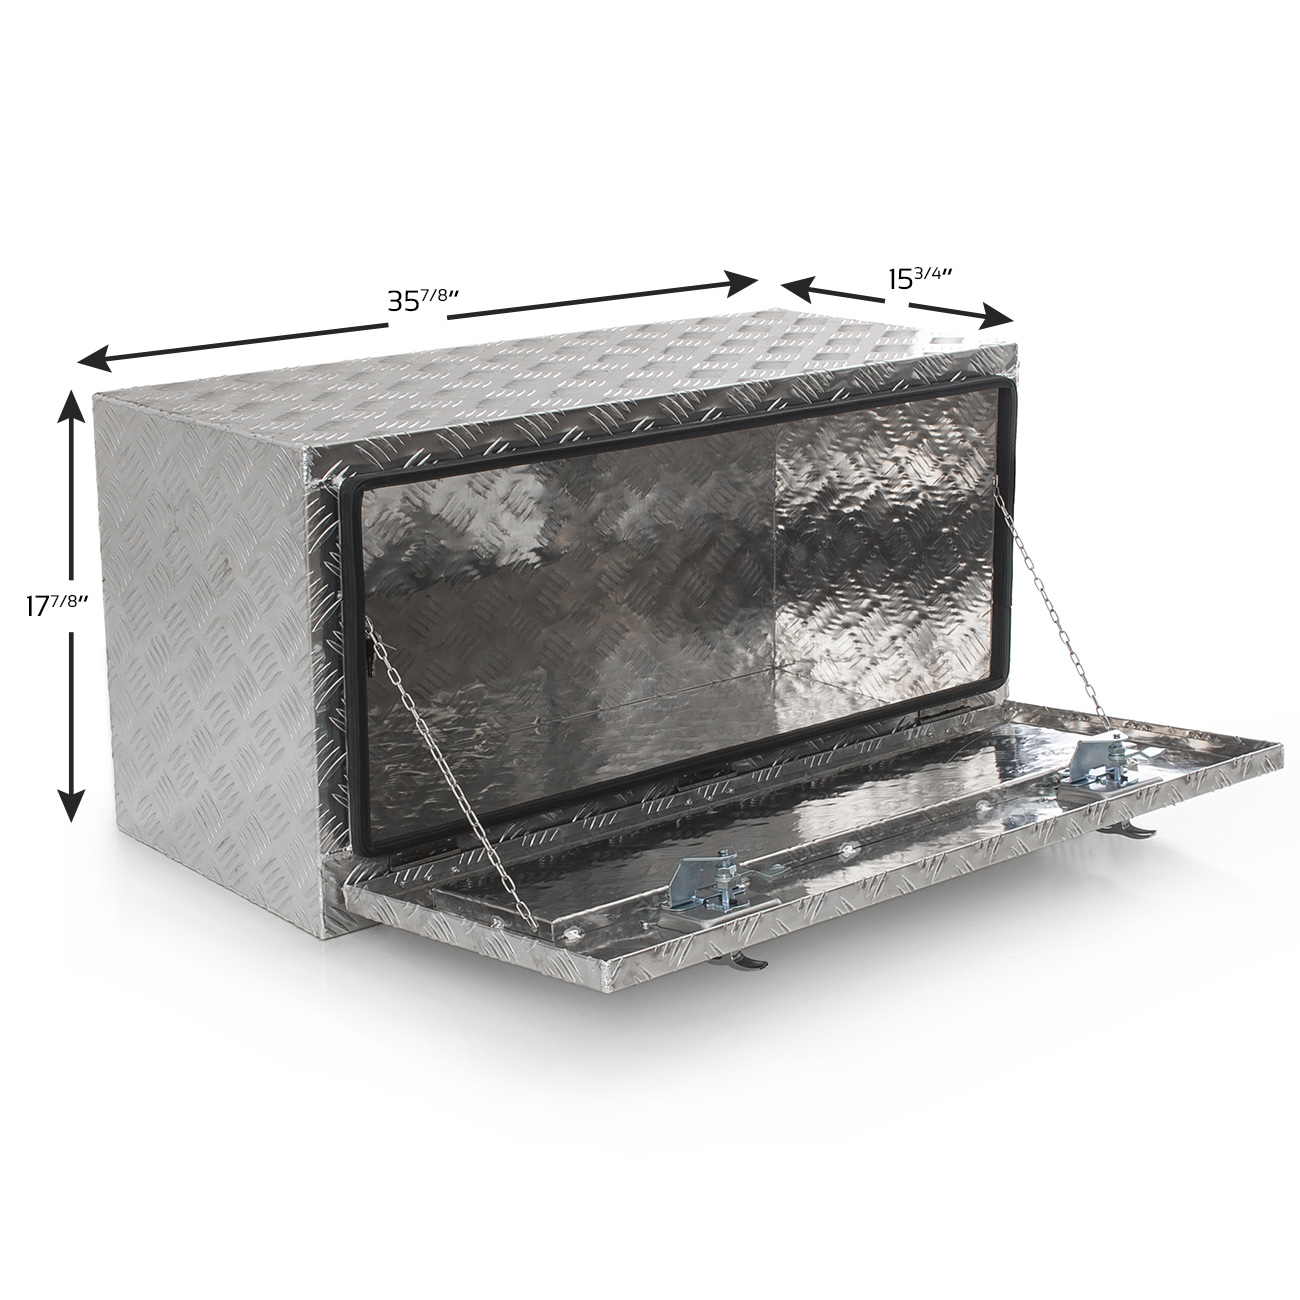 Truck Bed Storage Boxes 28 Images Plastic Truck